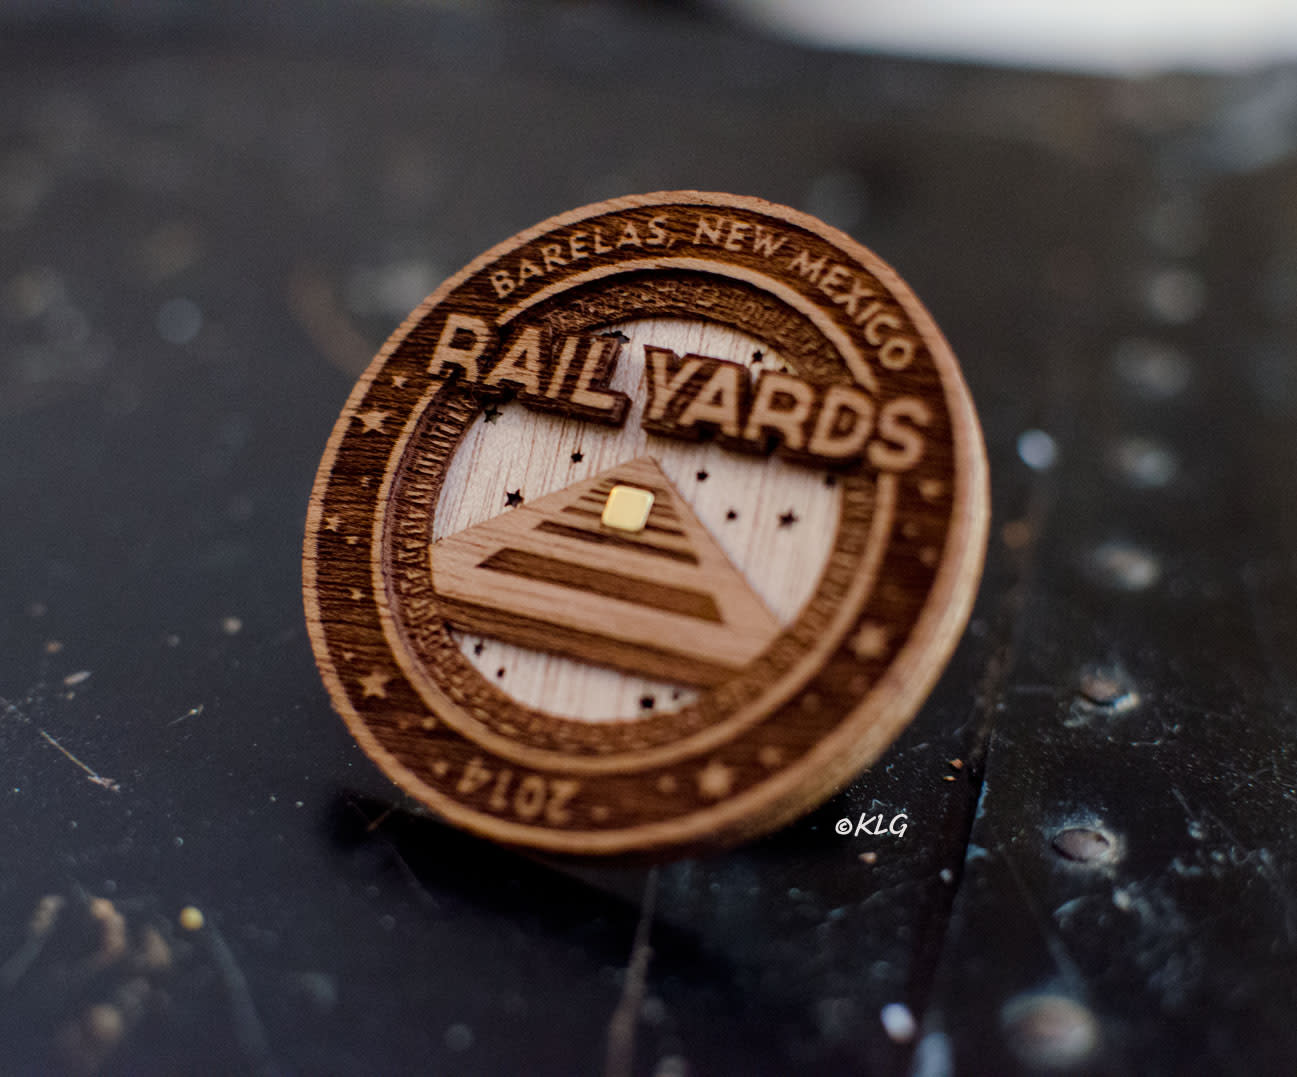 Rail Yards Market Token in Albuquerque